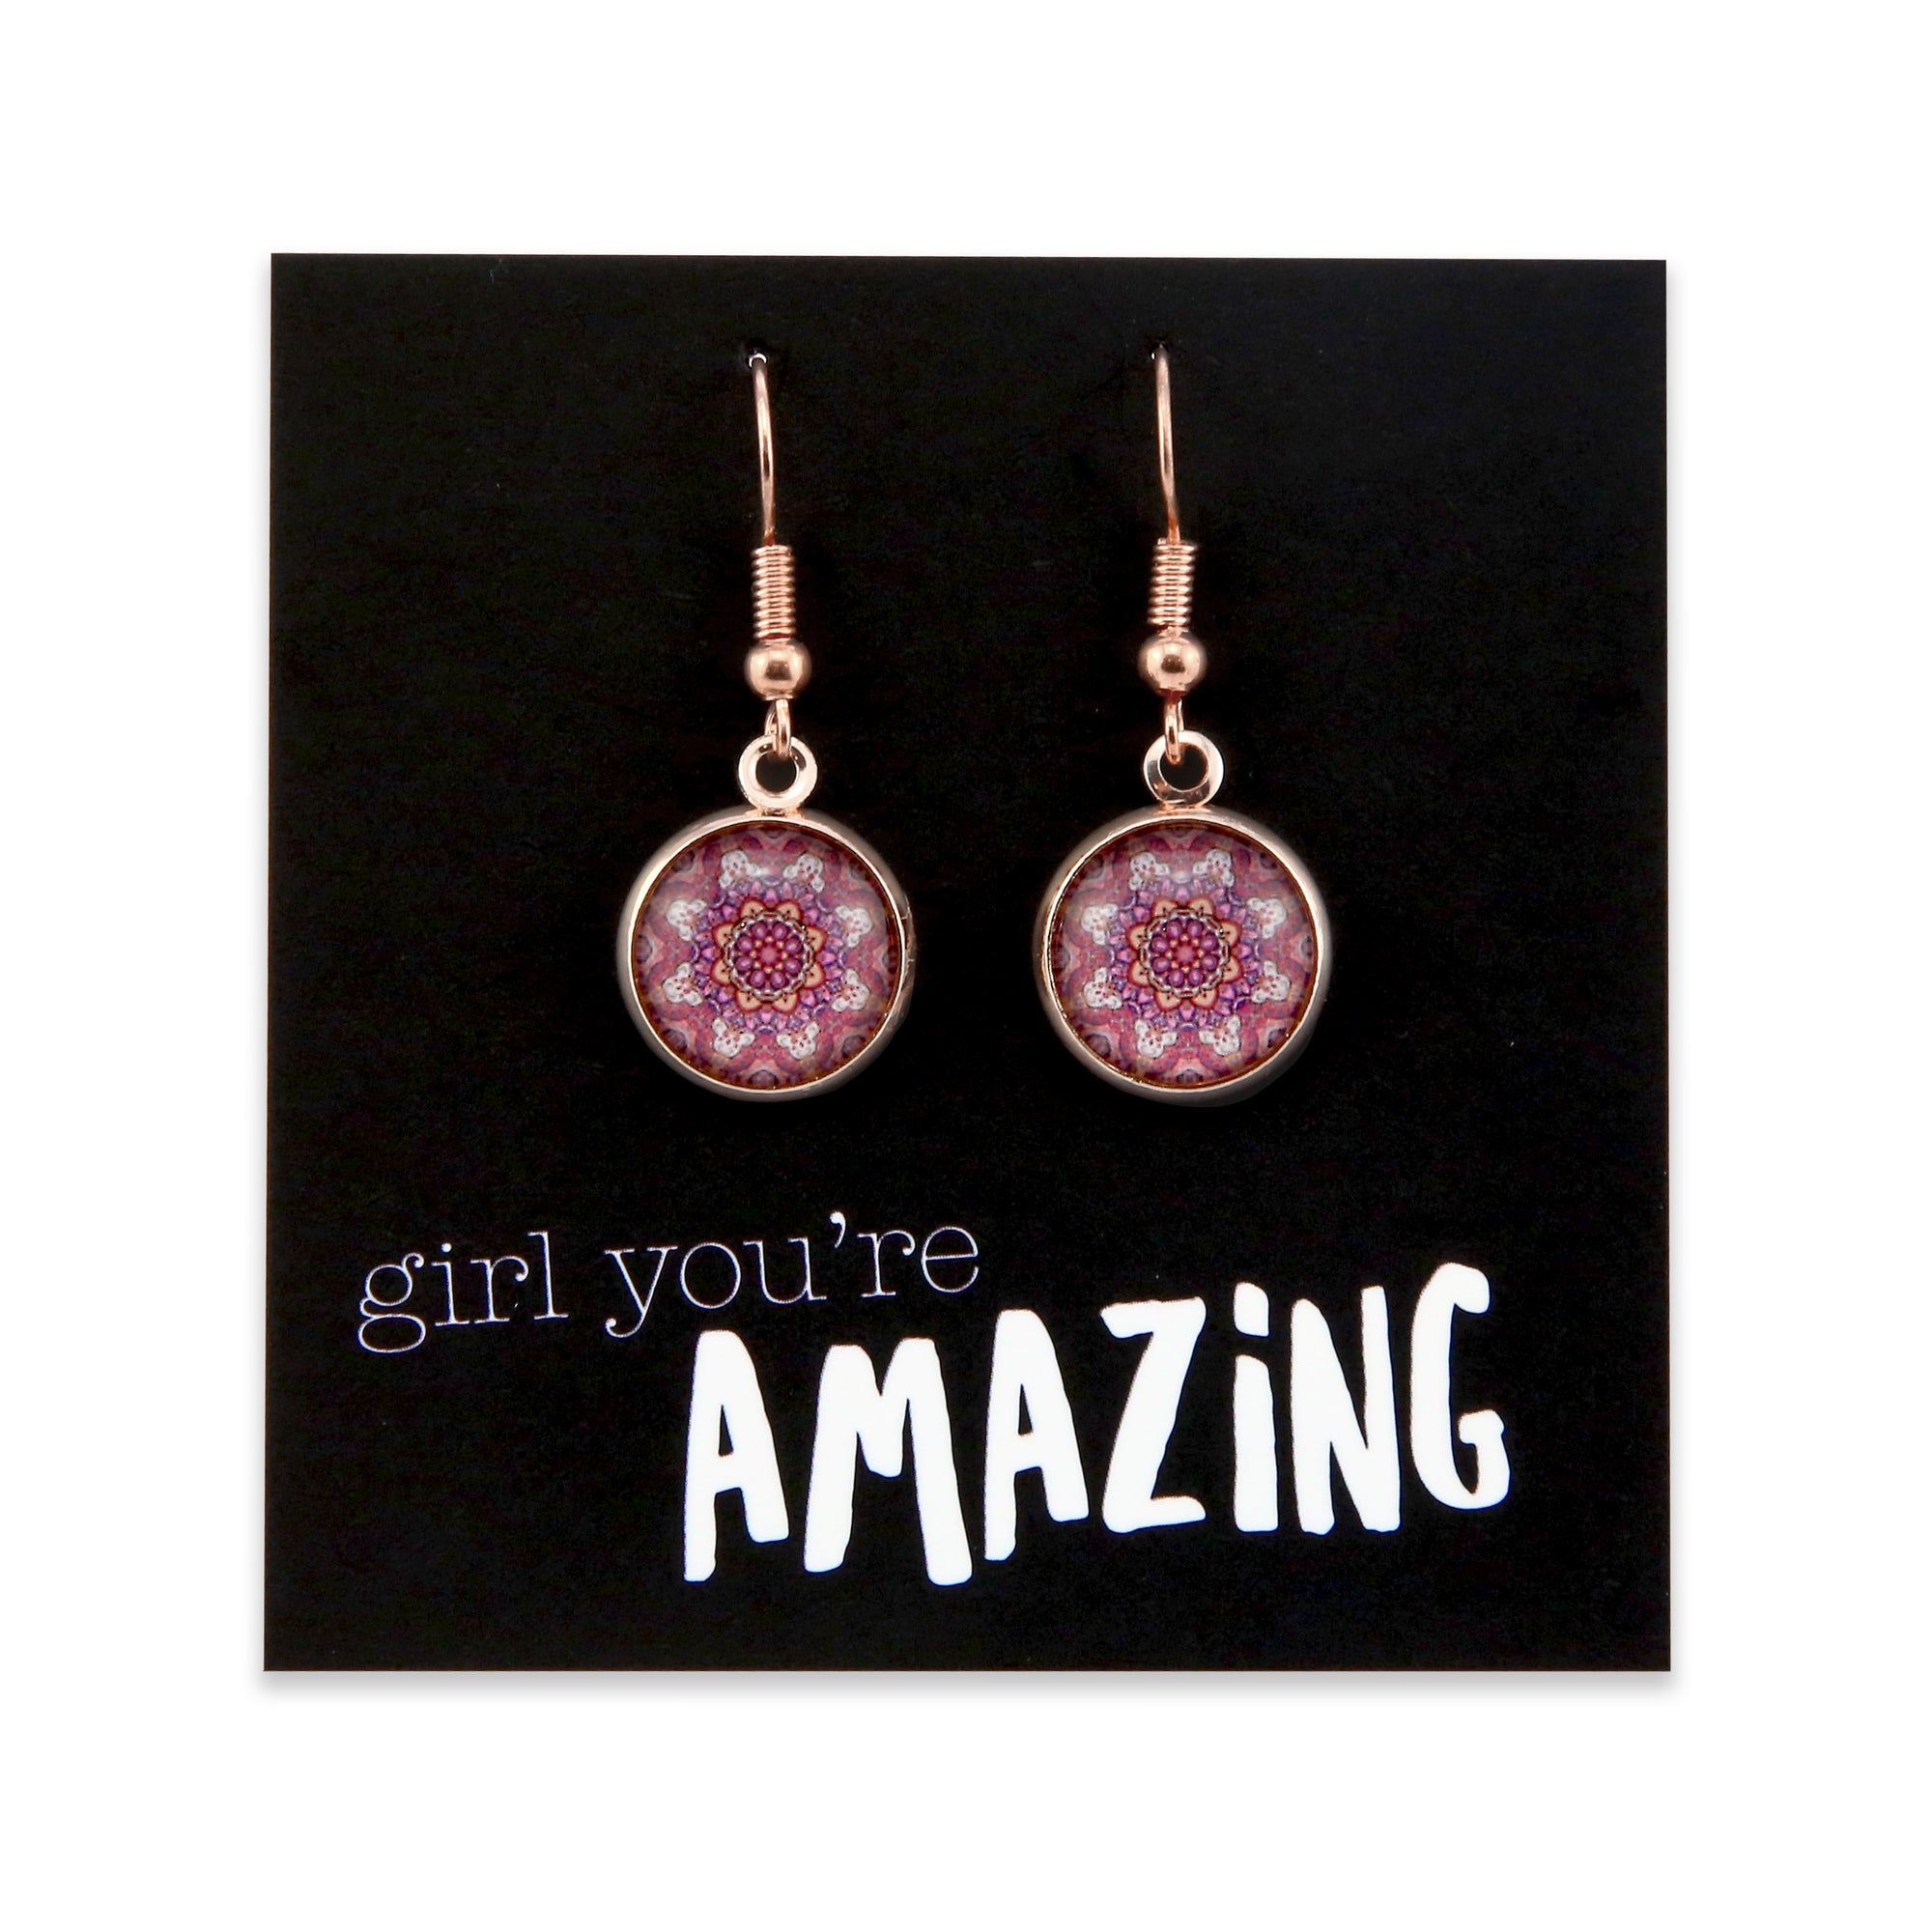 BOHO Collection - Girl You're Amazing - Stainless Steel Rose Gold Dangle Earrings - Daybreak (9112)